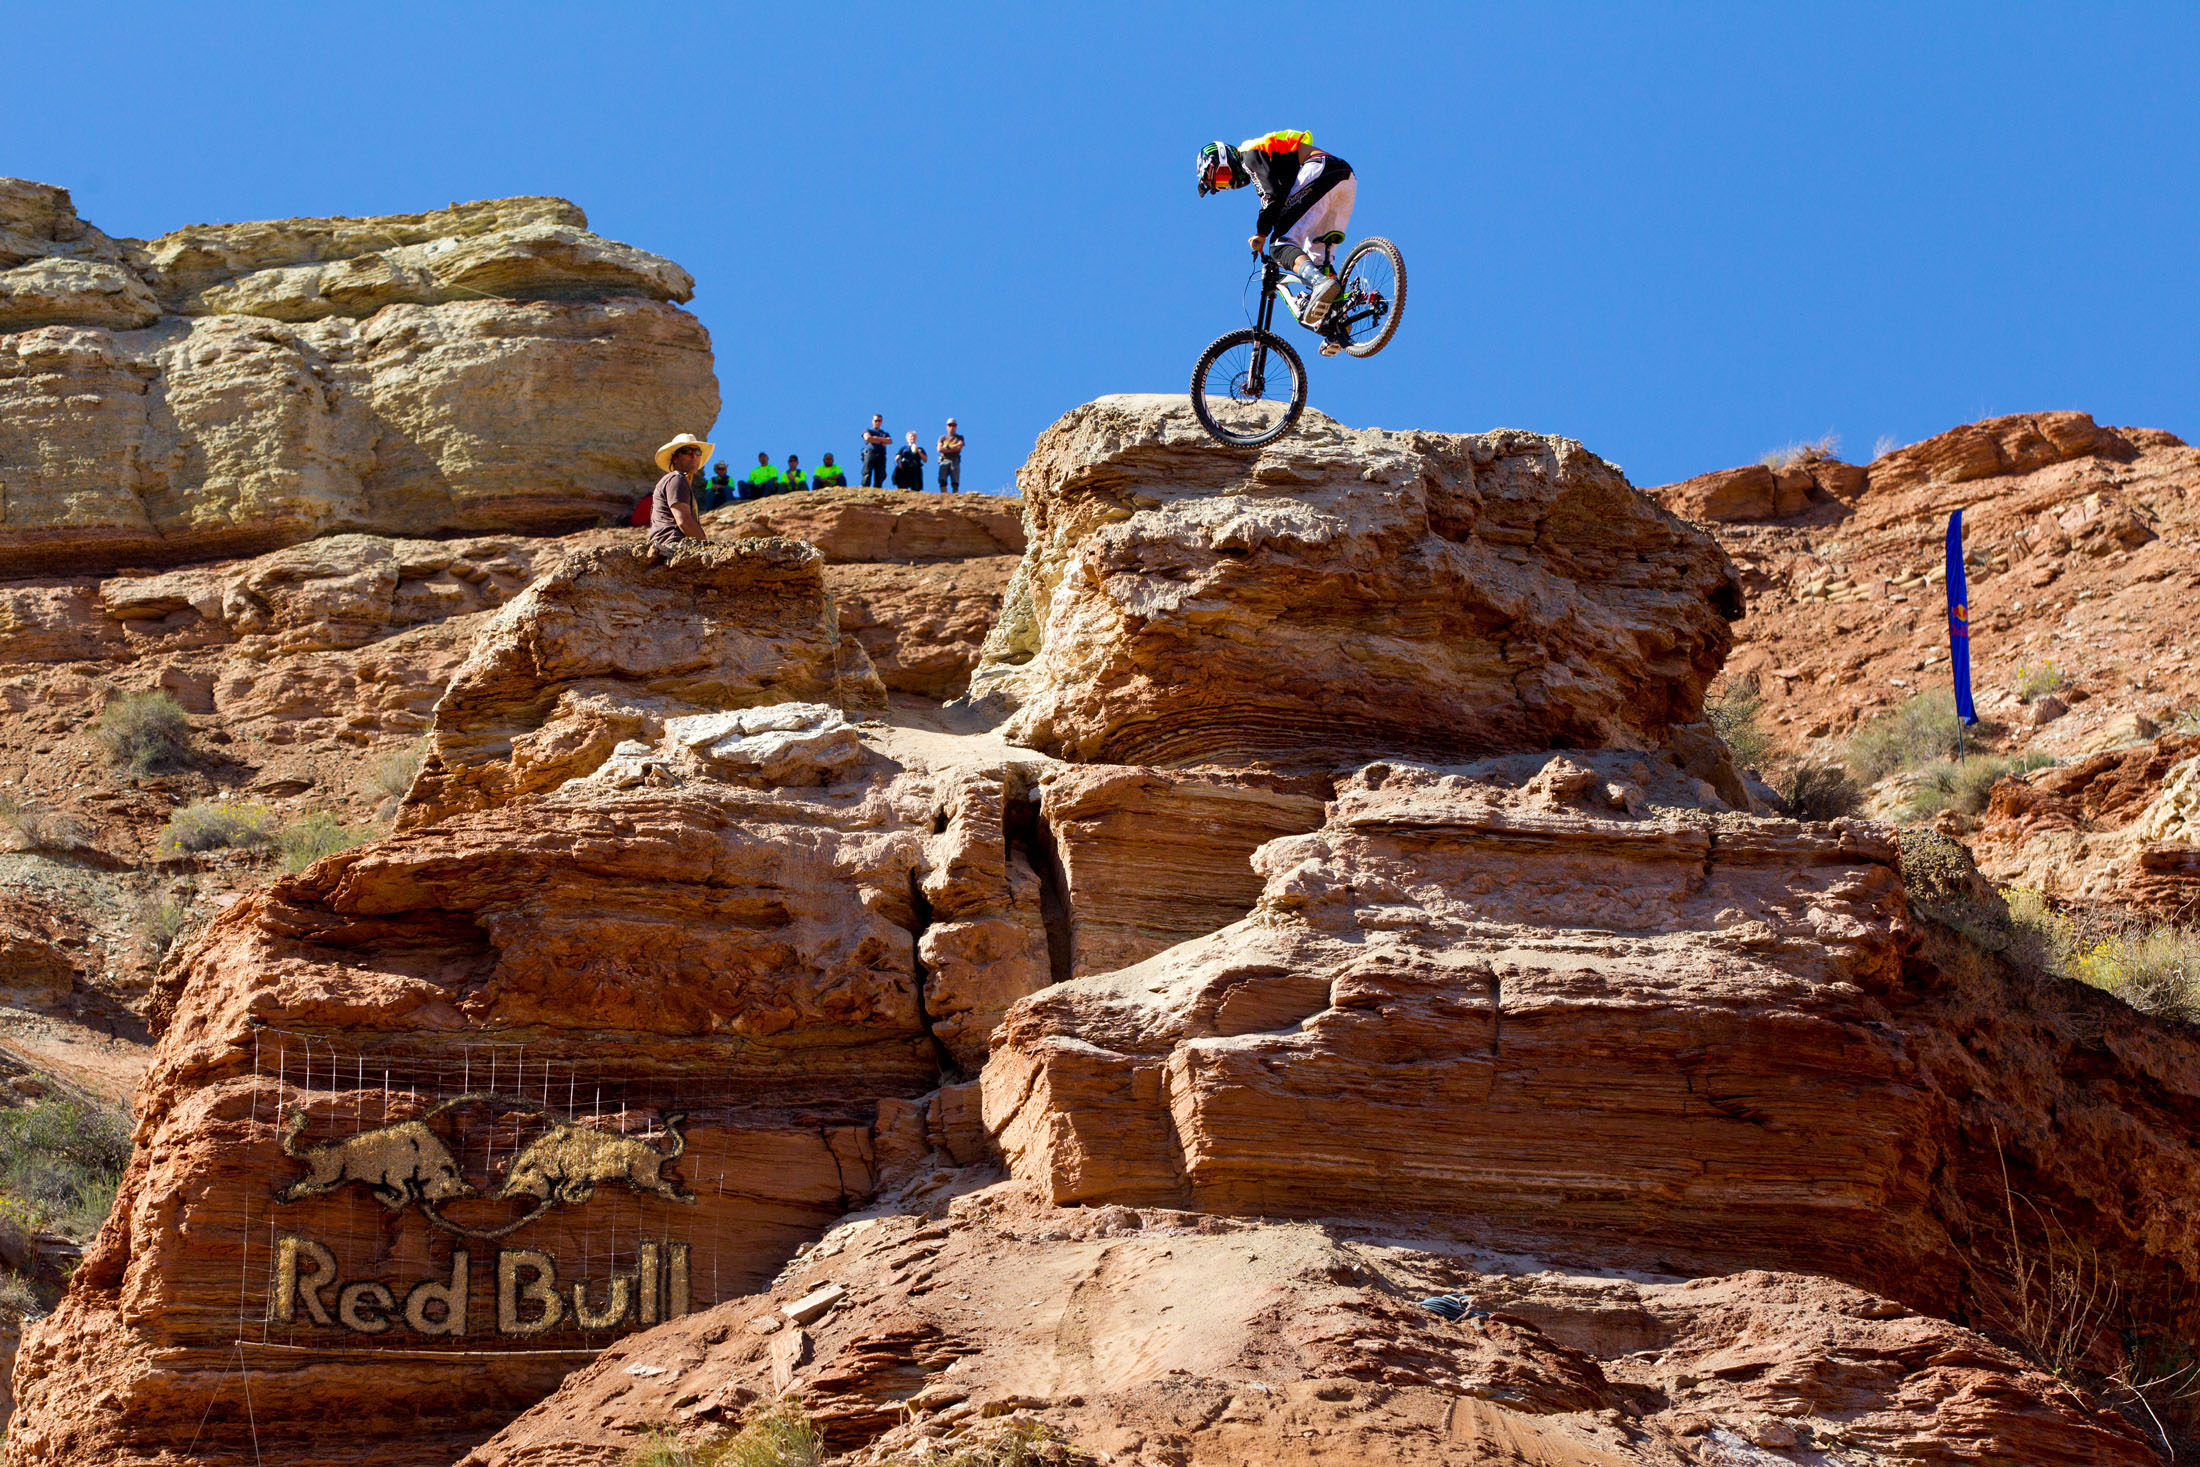 Cam Zink rides his bike at  Red Bull Rampage in Virgin, Utah, USA on 29